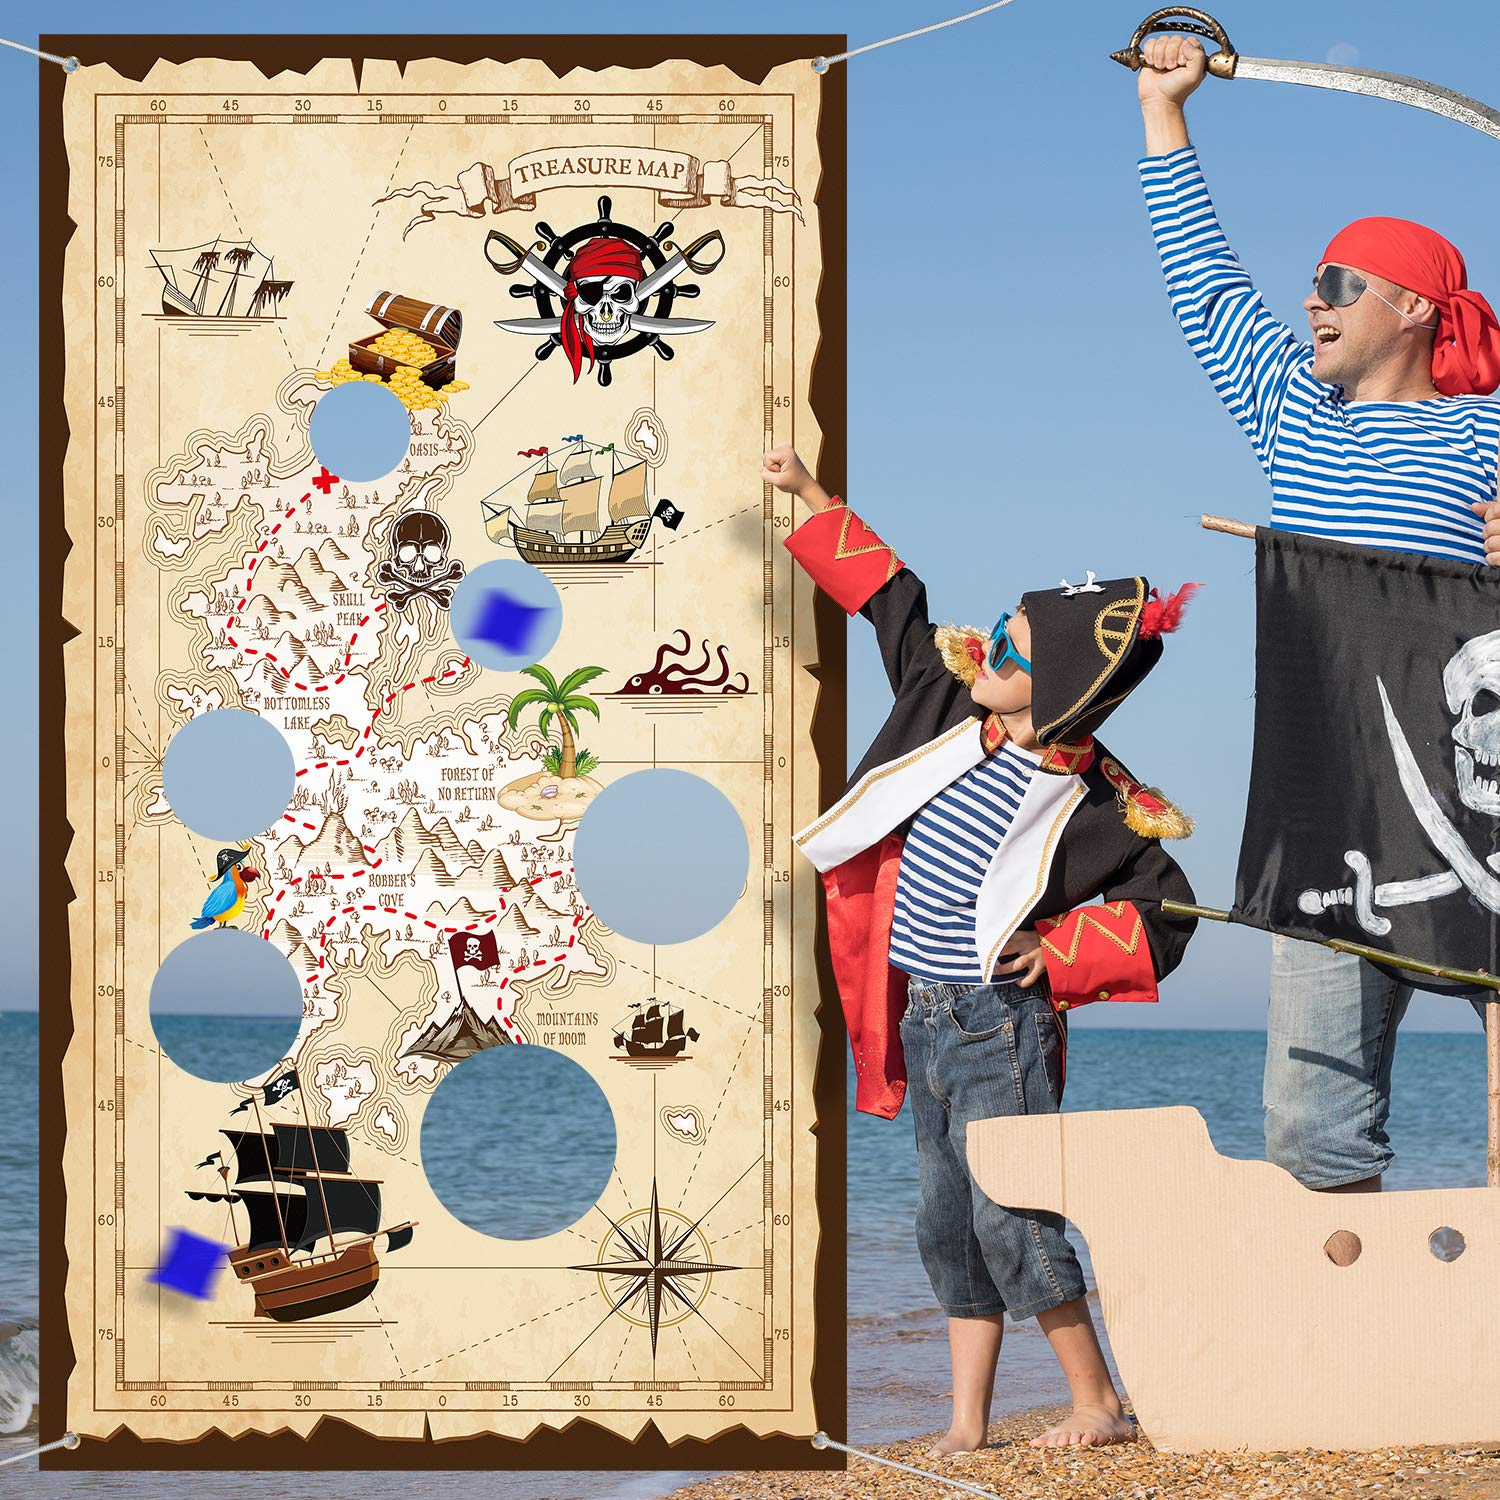 Pirate Bean Bag Toss Game Pirate Treasure Hunt Toss Games with 3 Bean Bags, Pirate Theme Party Decorations and Supplies by Blulu